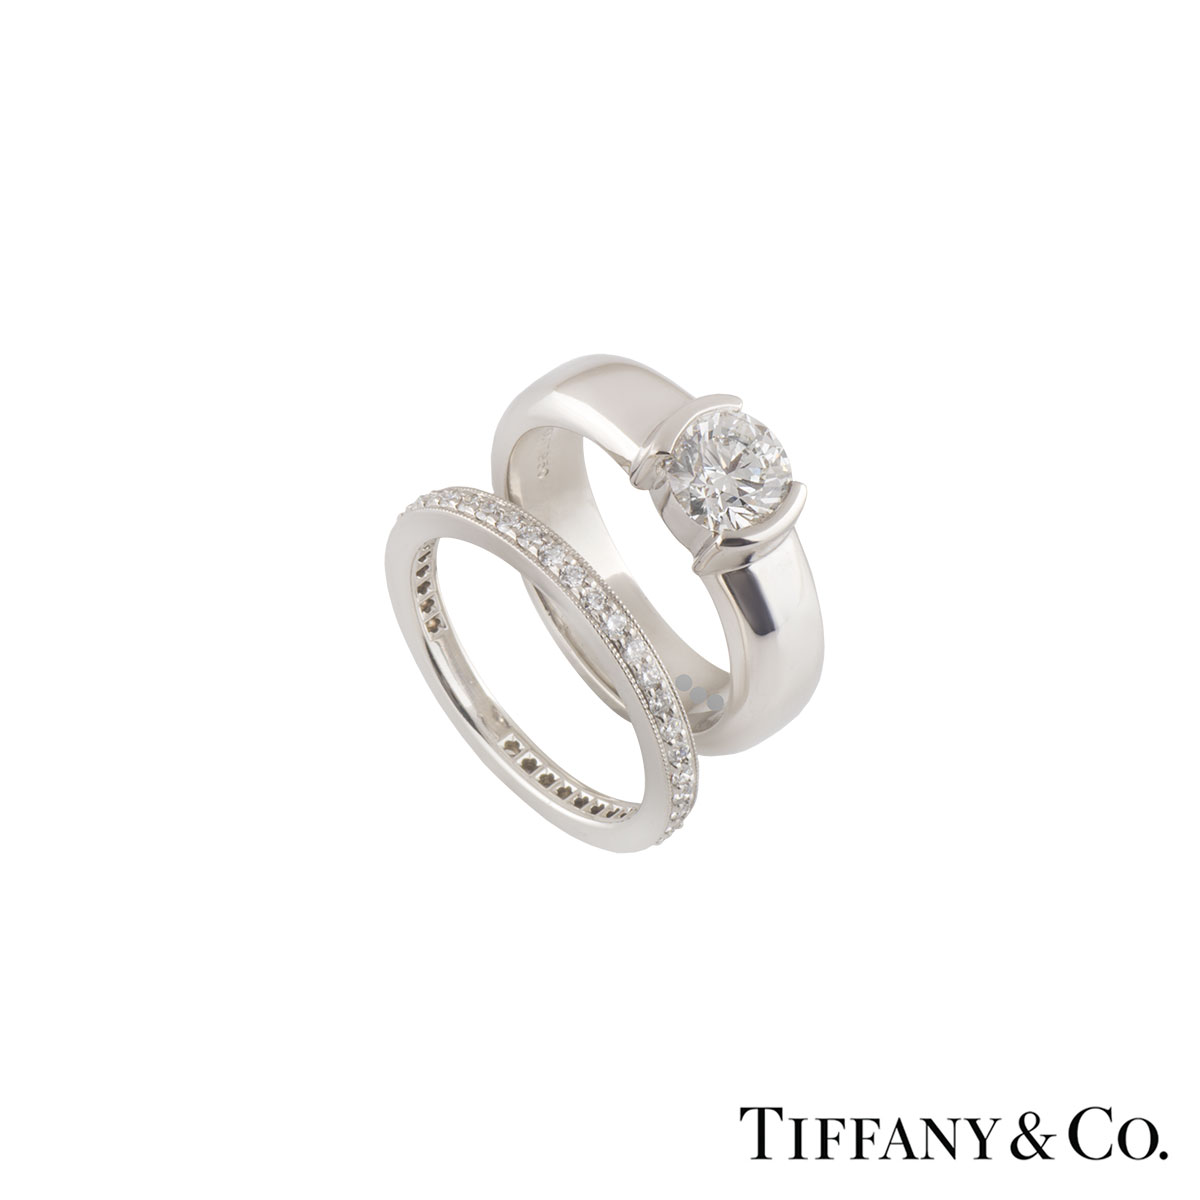 Tiffany & Co. Platinum Diamond Etoile & Legacy Bridal Set